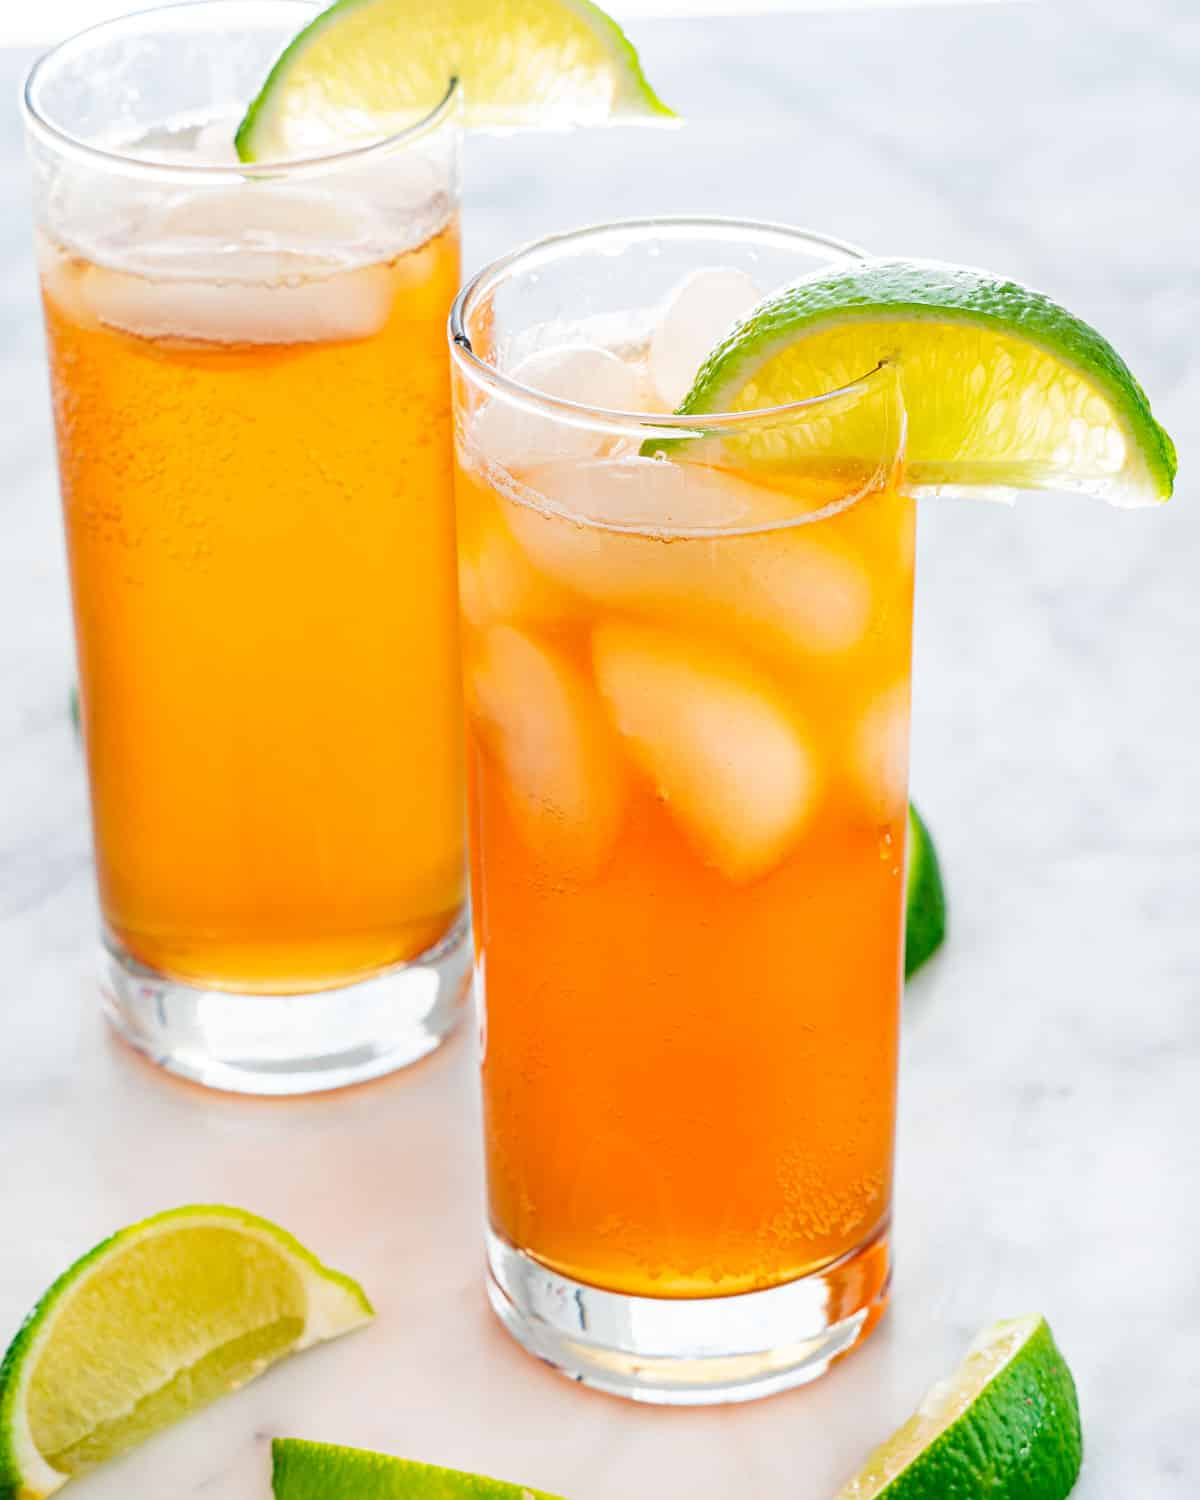 two collins glasses filled with dark and stormy and garnished with a lime wedge